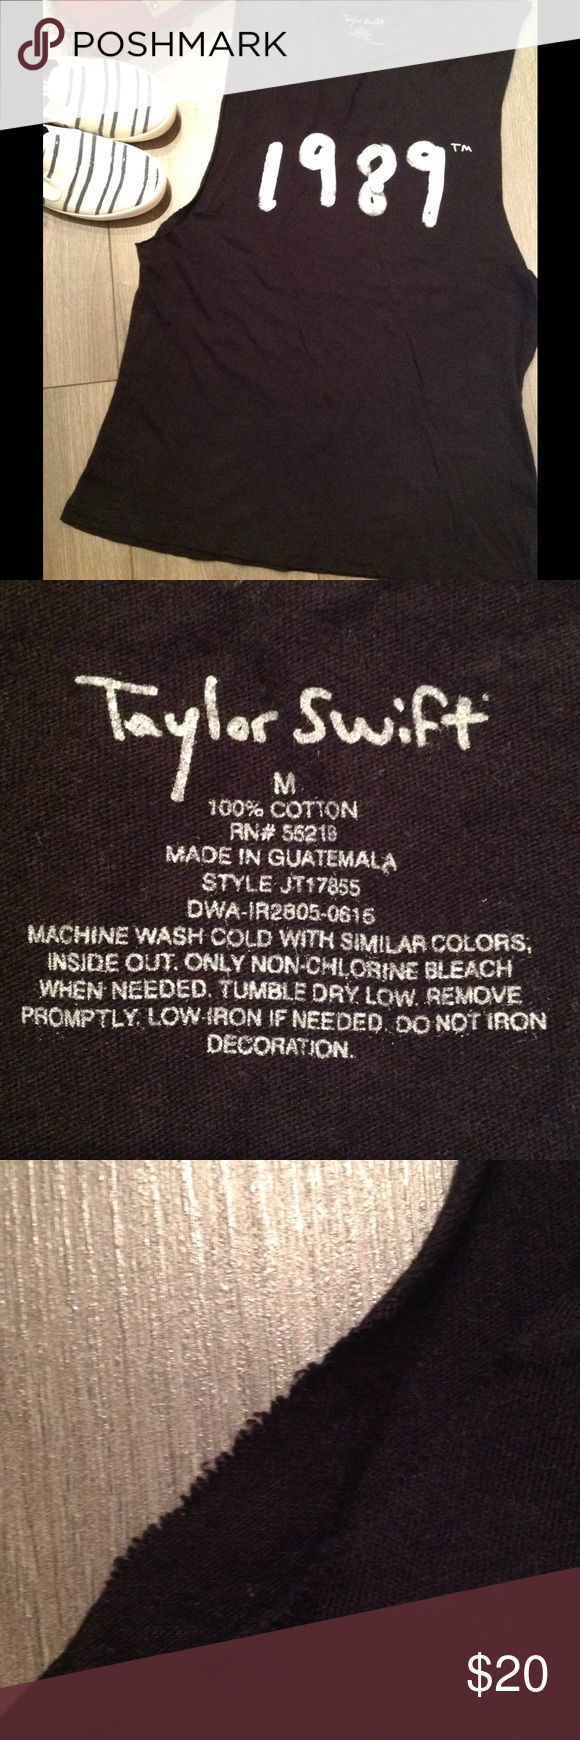 NWOT == Taylor Swift 1989 Sleeveless Tee Brand New Without Tags = Taylor Swift 1989 Official Merchandise Vintage Style Muscle Tee. Super soft and 100% cotton. Super cute vintage style torn sleeveless arms. I went to the concert, bought the tee shirt but never wore it. Tops Tank Tops